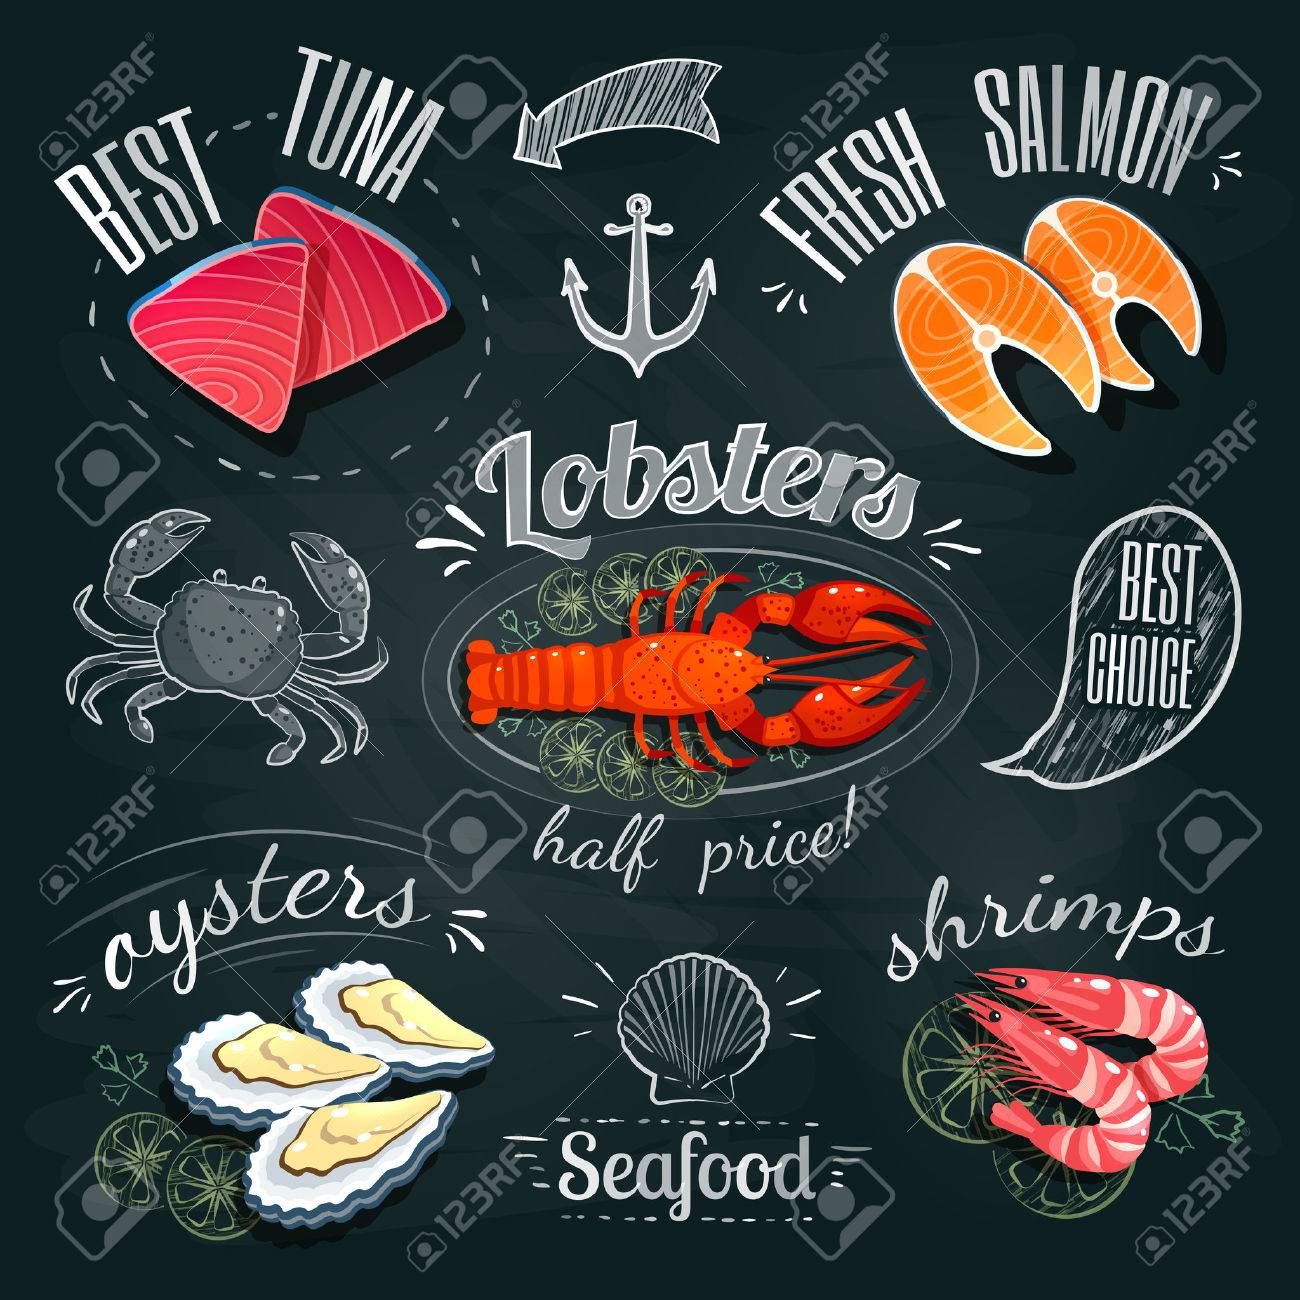 Chalkboard seafood ADs - tuna, salmon, lobster, oysters and shrimps. Vector illustration, - 53378569